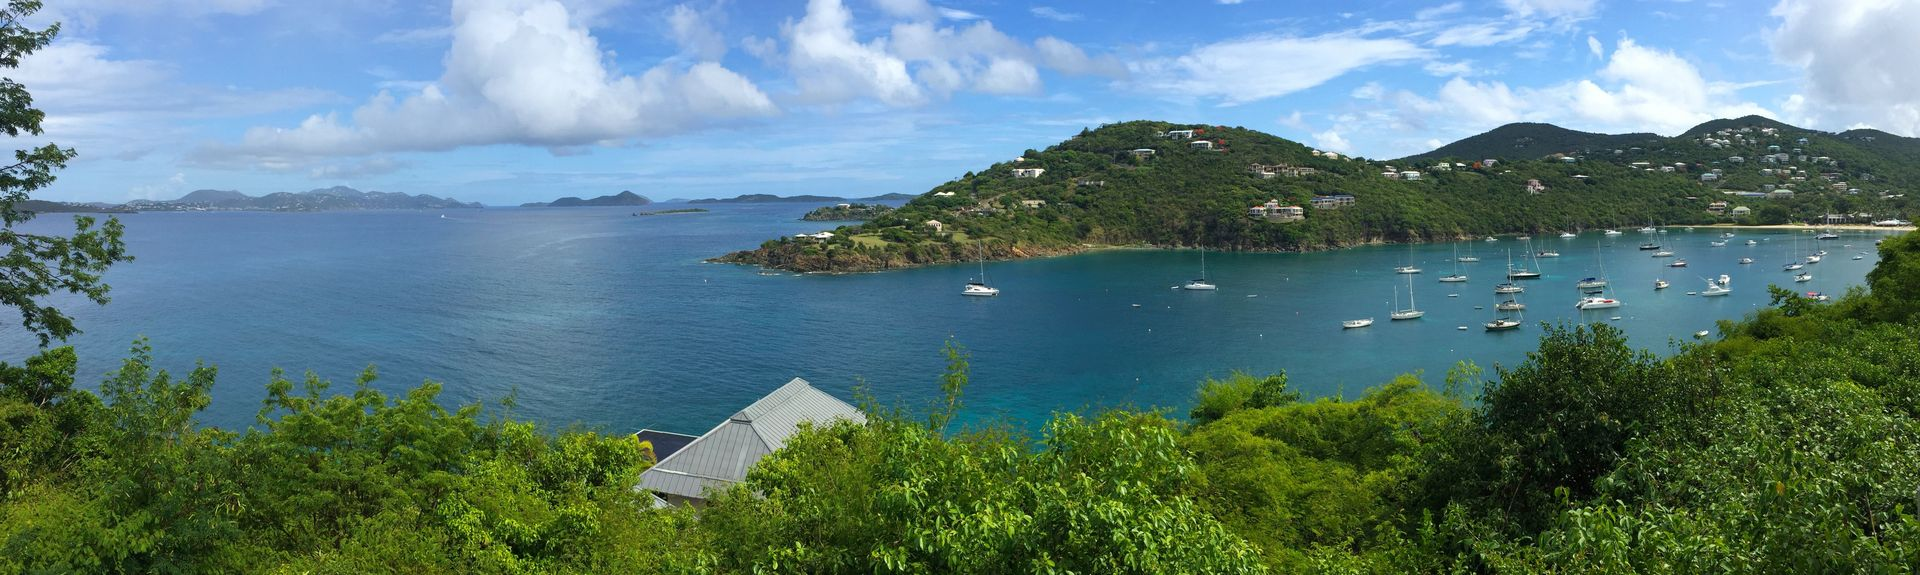 Great Cruz Bay, Cruz Bay, US Virgin Islands